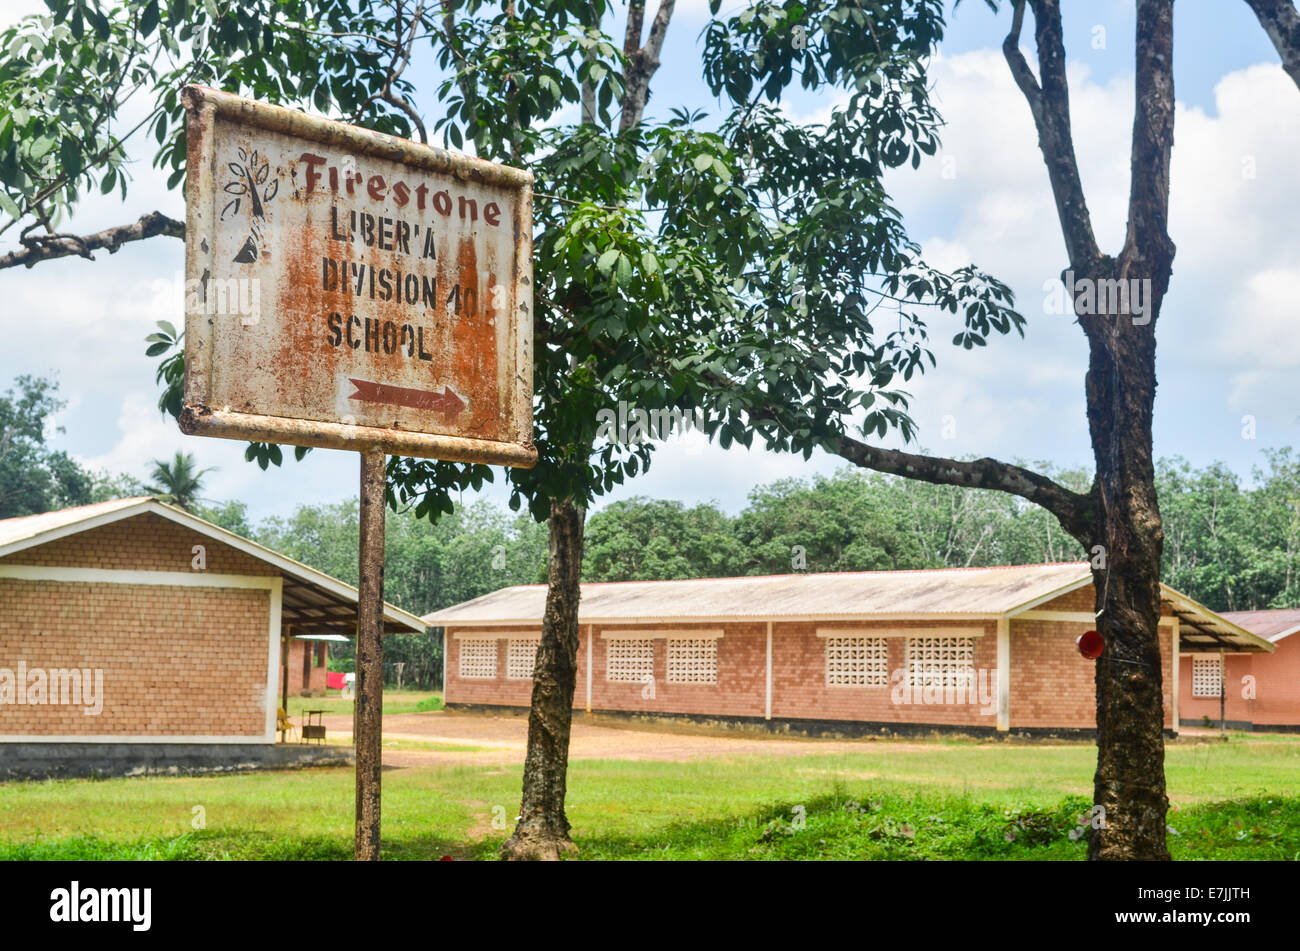 A school sign in the Firestone Natural Rubber Company giant plantation in Liberia - Stock Image